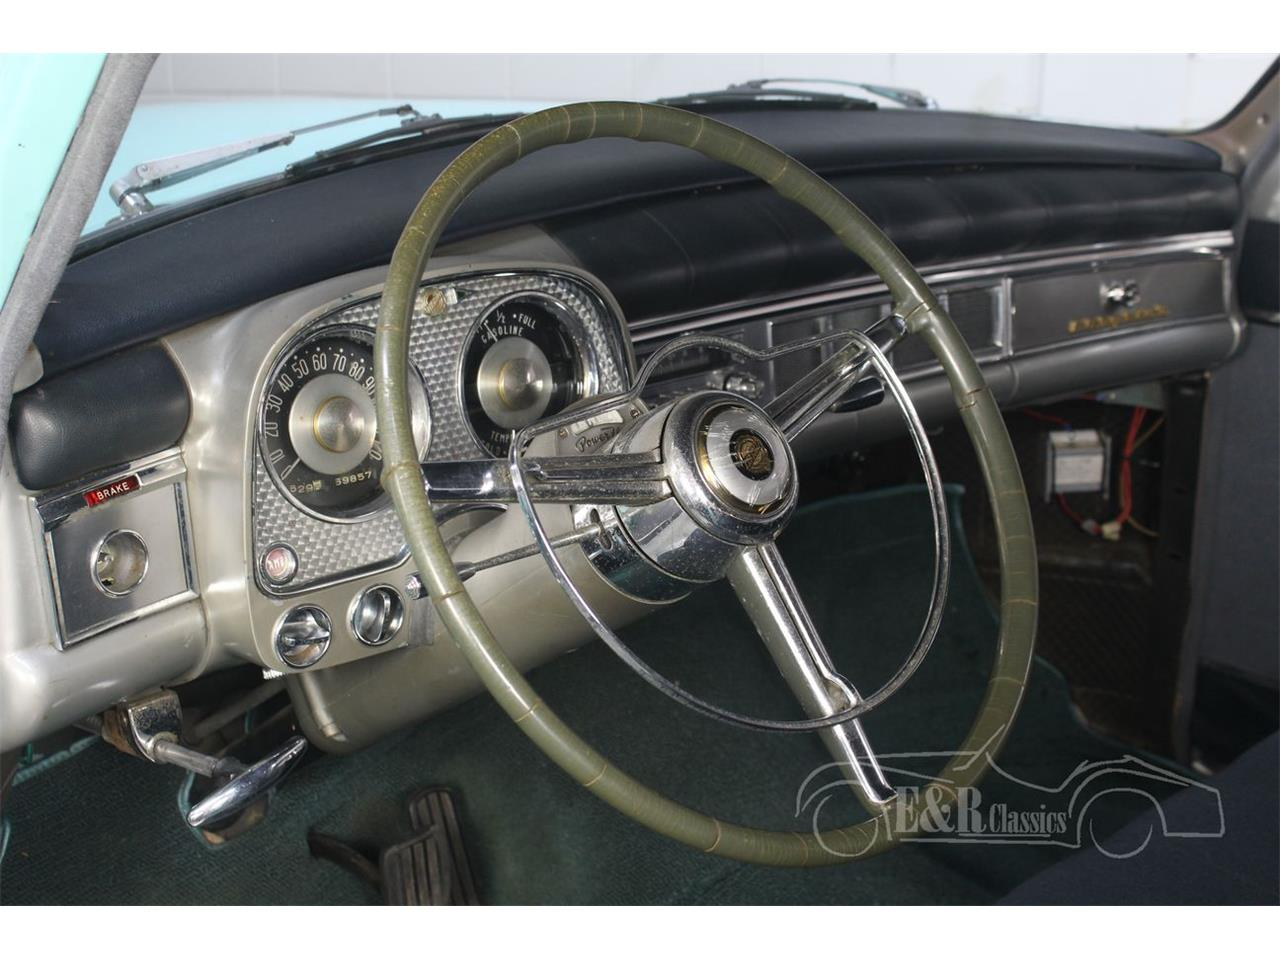 Large Picture of 1954 Chrysler Windsor located in noord brabant - $19,000.00 Offered by E & R Classics - QJZL